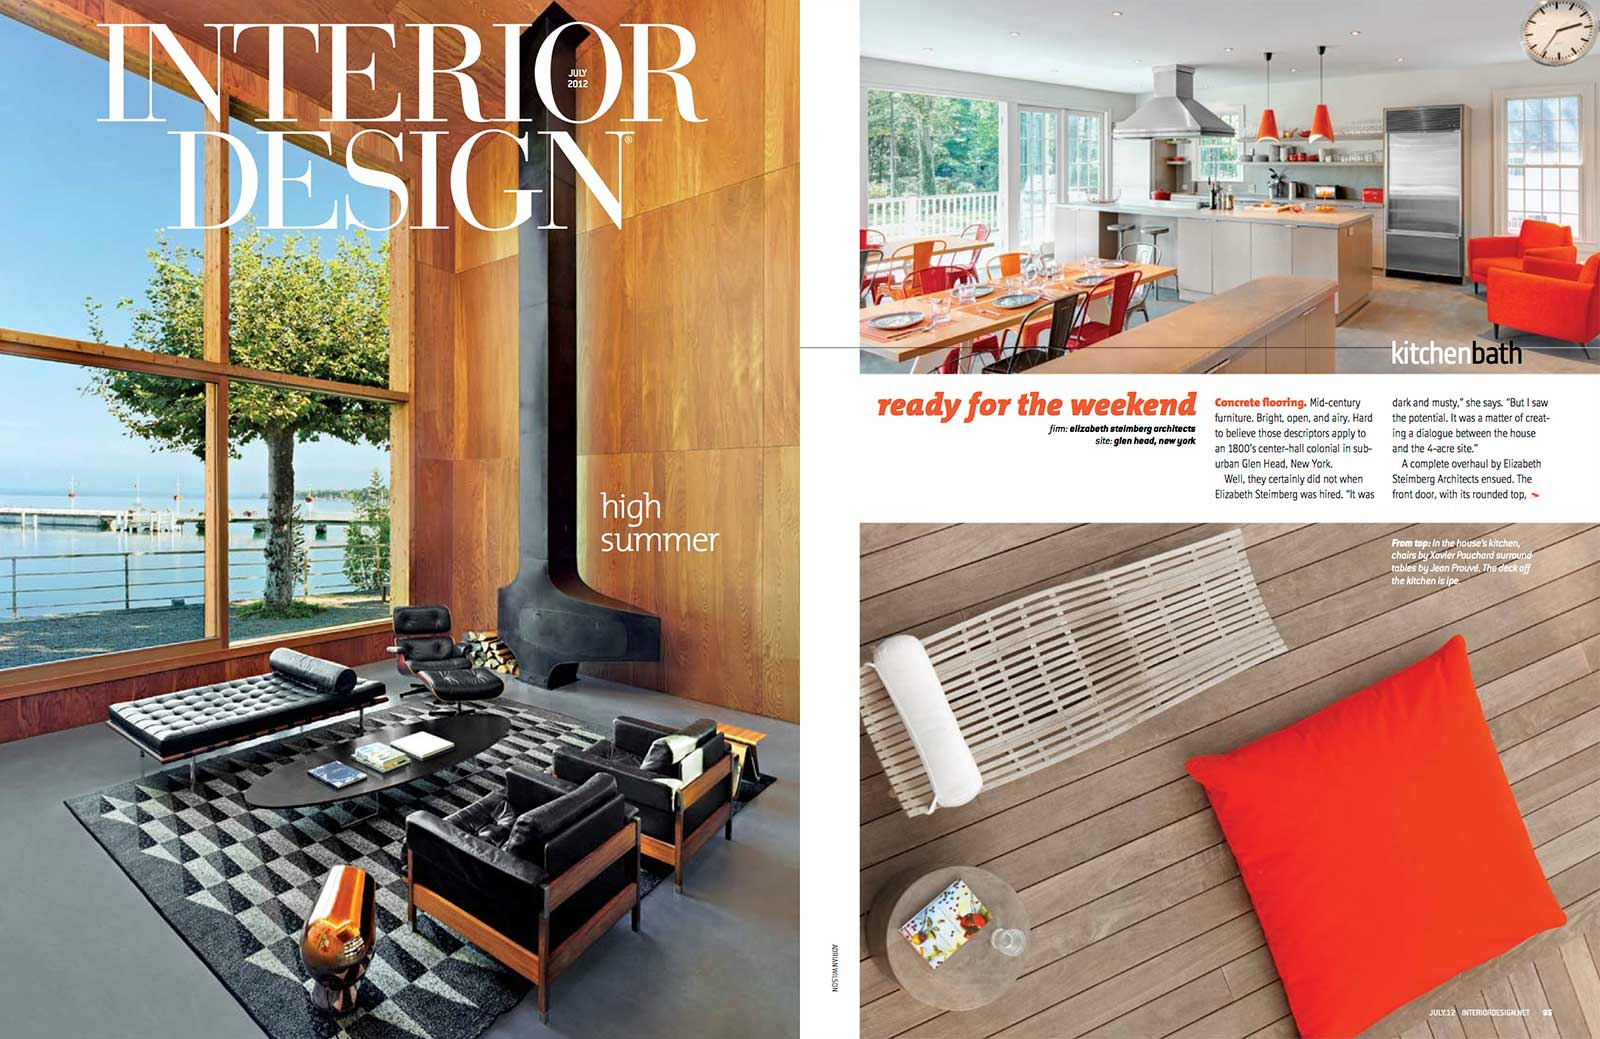 Interior Design Magazine High Summer Issue July 2012